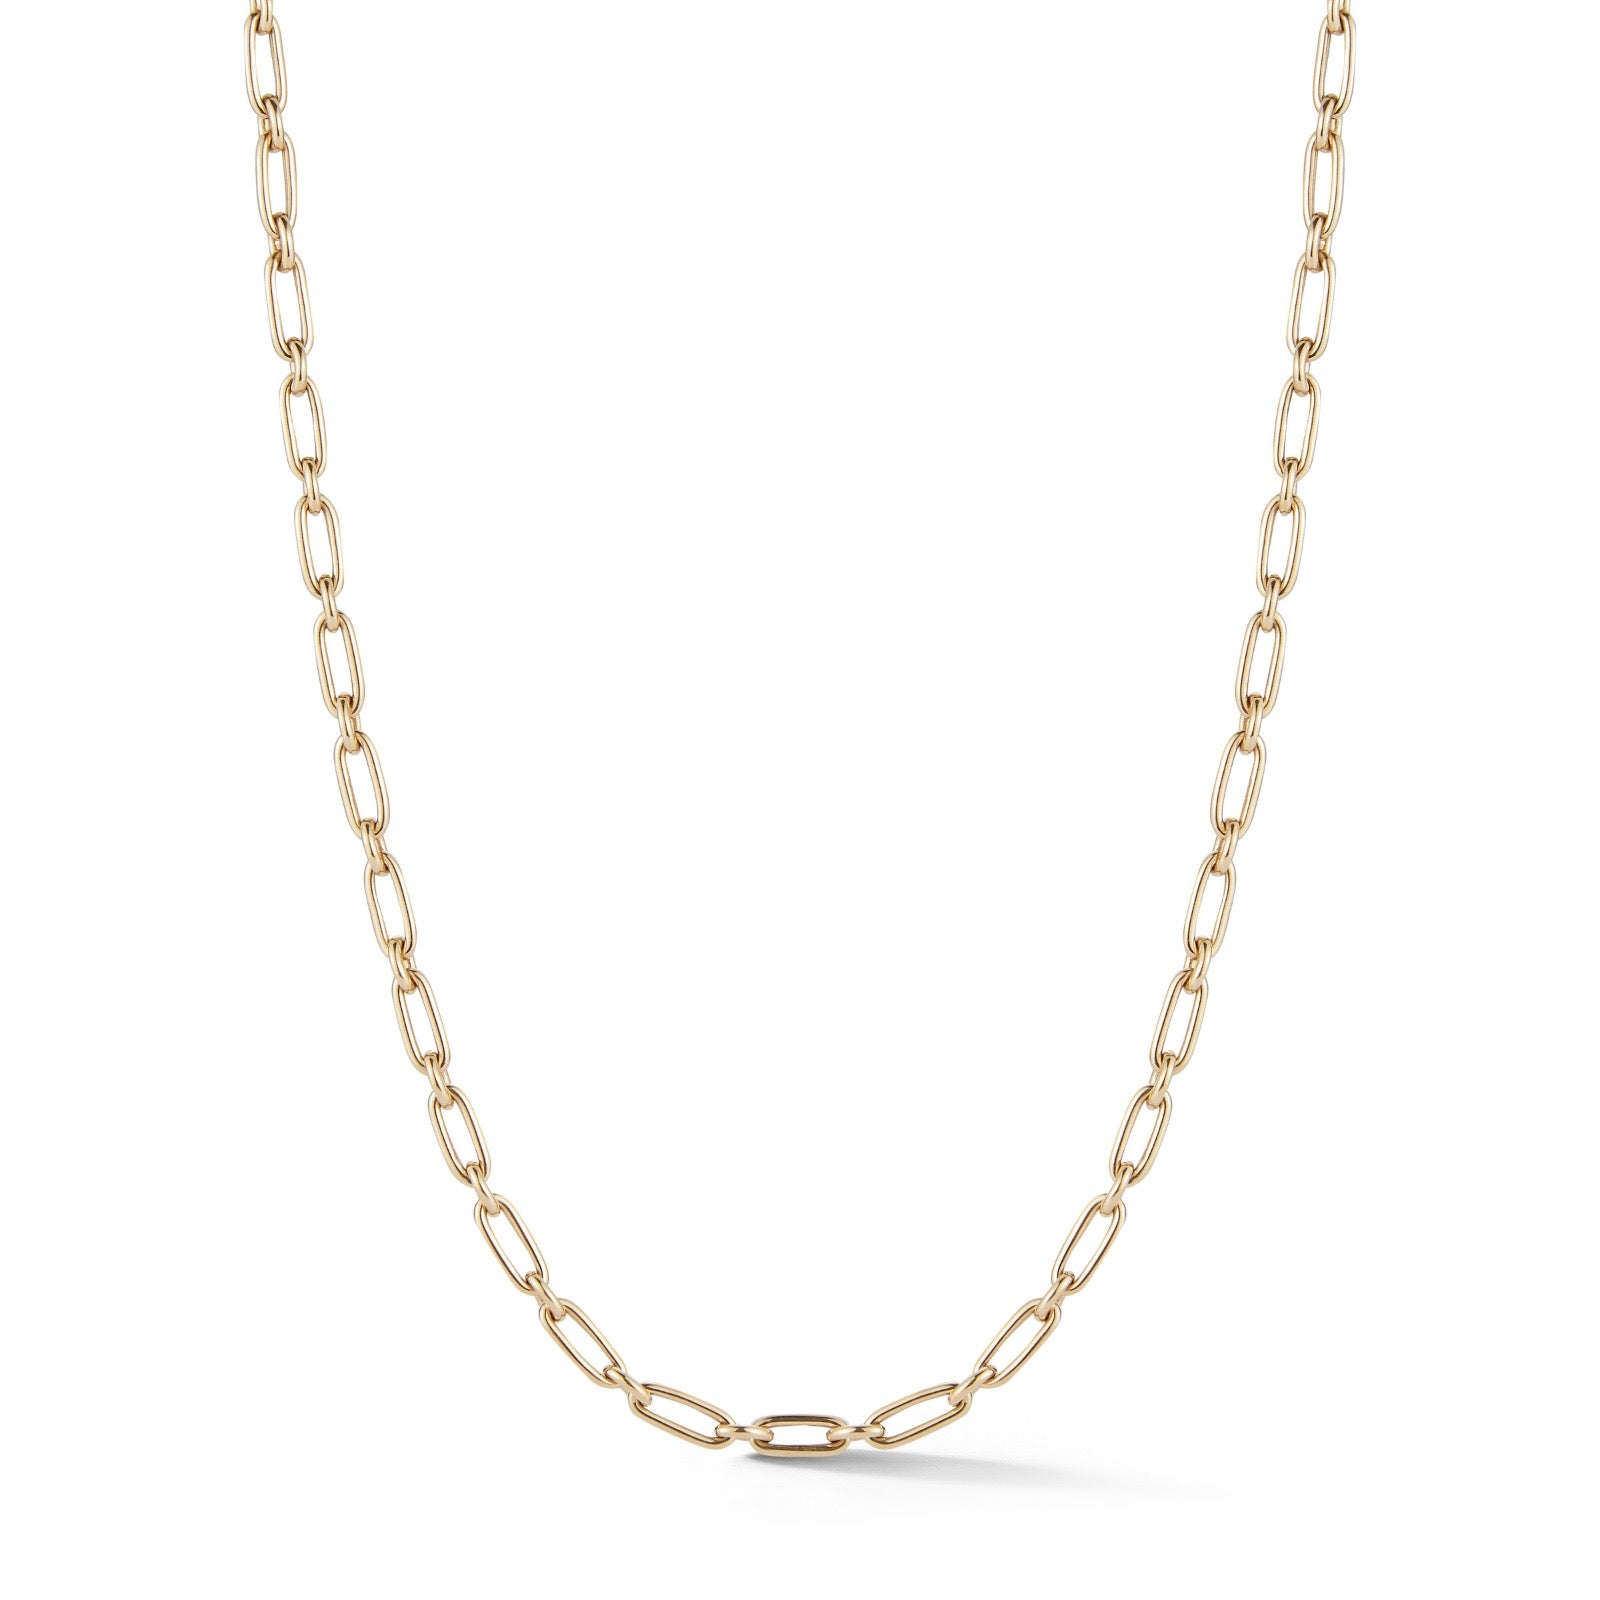 "14K Gold Heavy Alternating Elongated Link Handmade 19"" Oscar Chain"